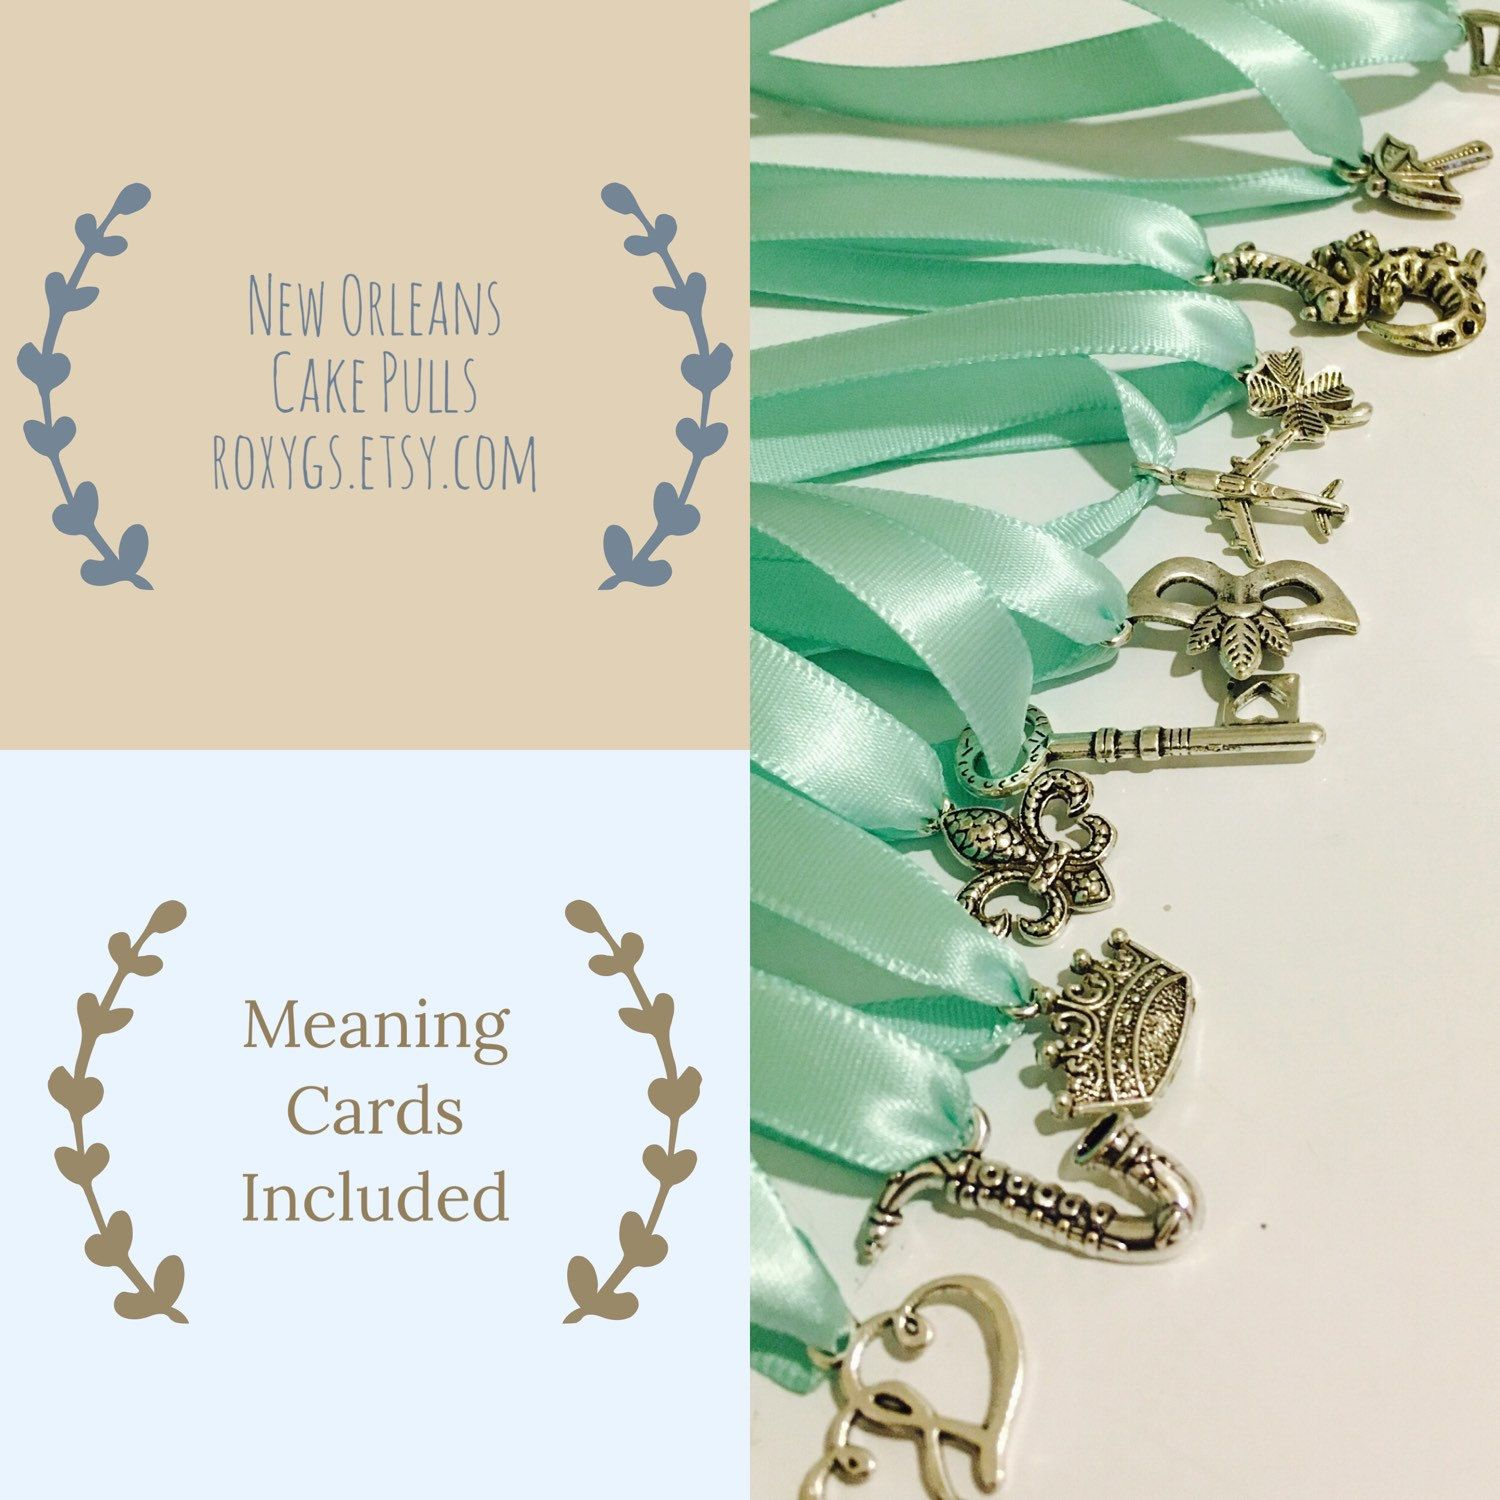 cake pulls, new orleans cake pulls 12 charms set 1 ribbons you